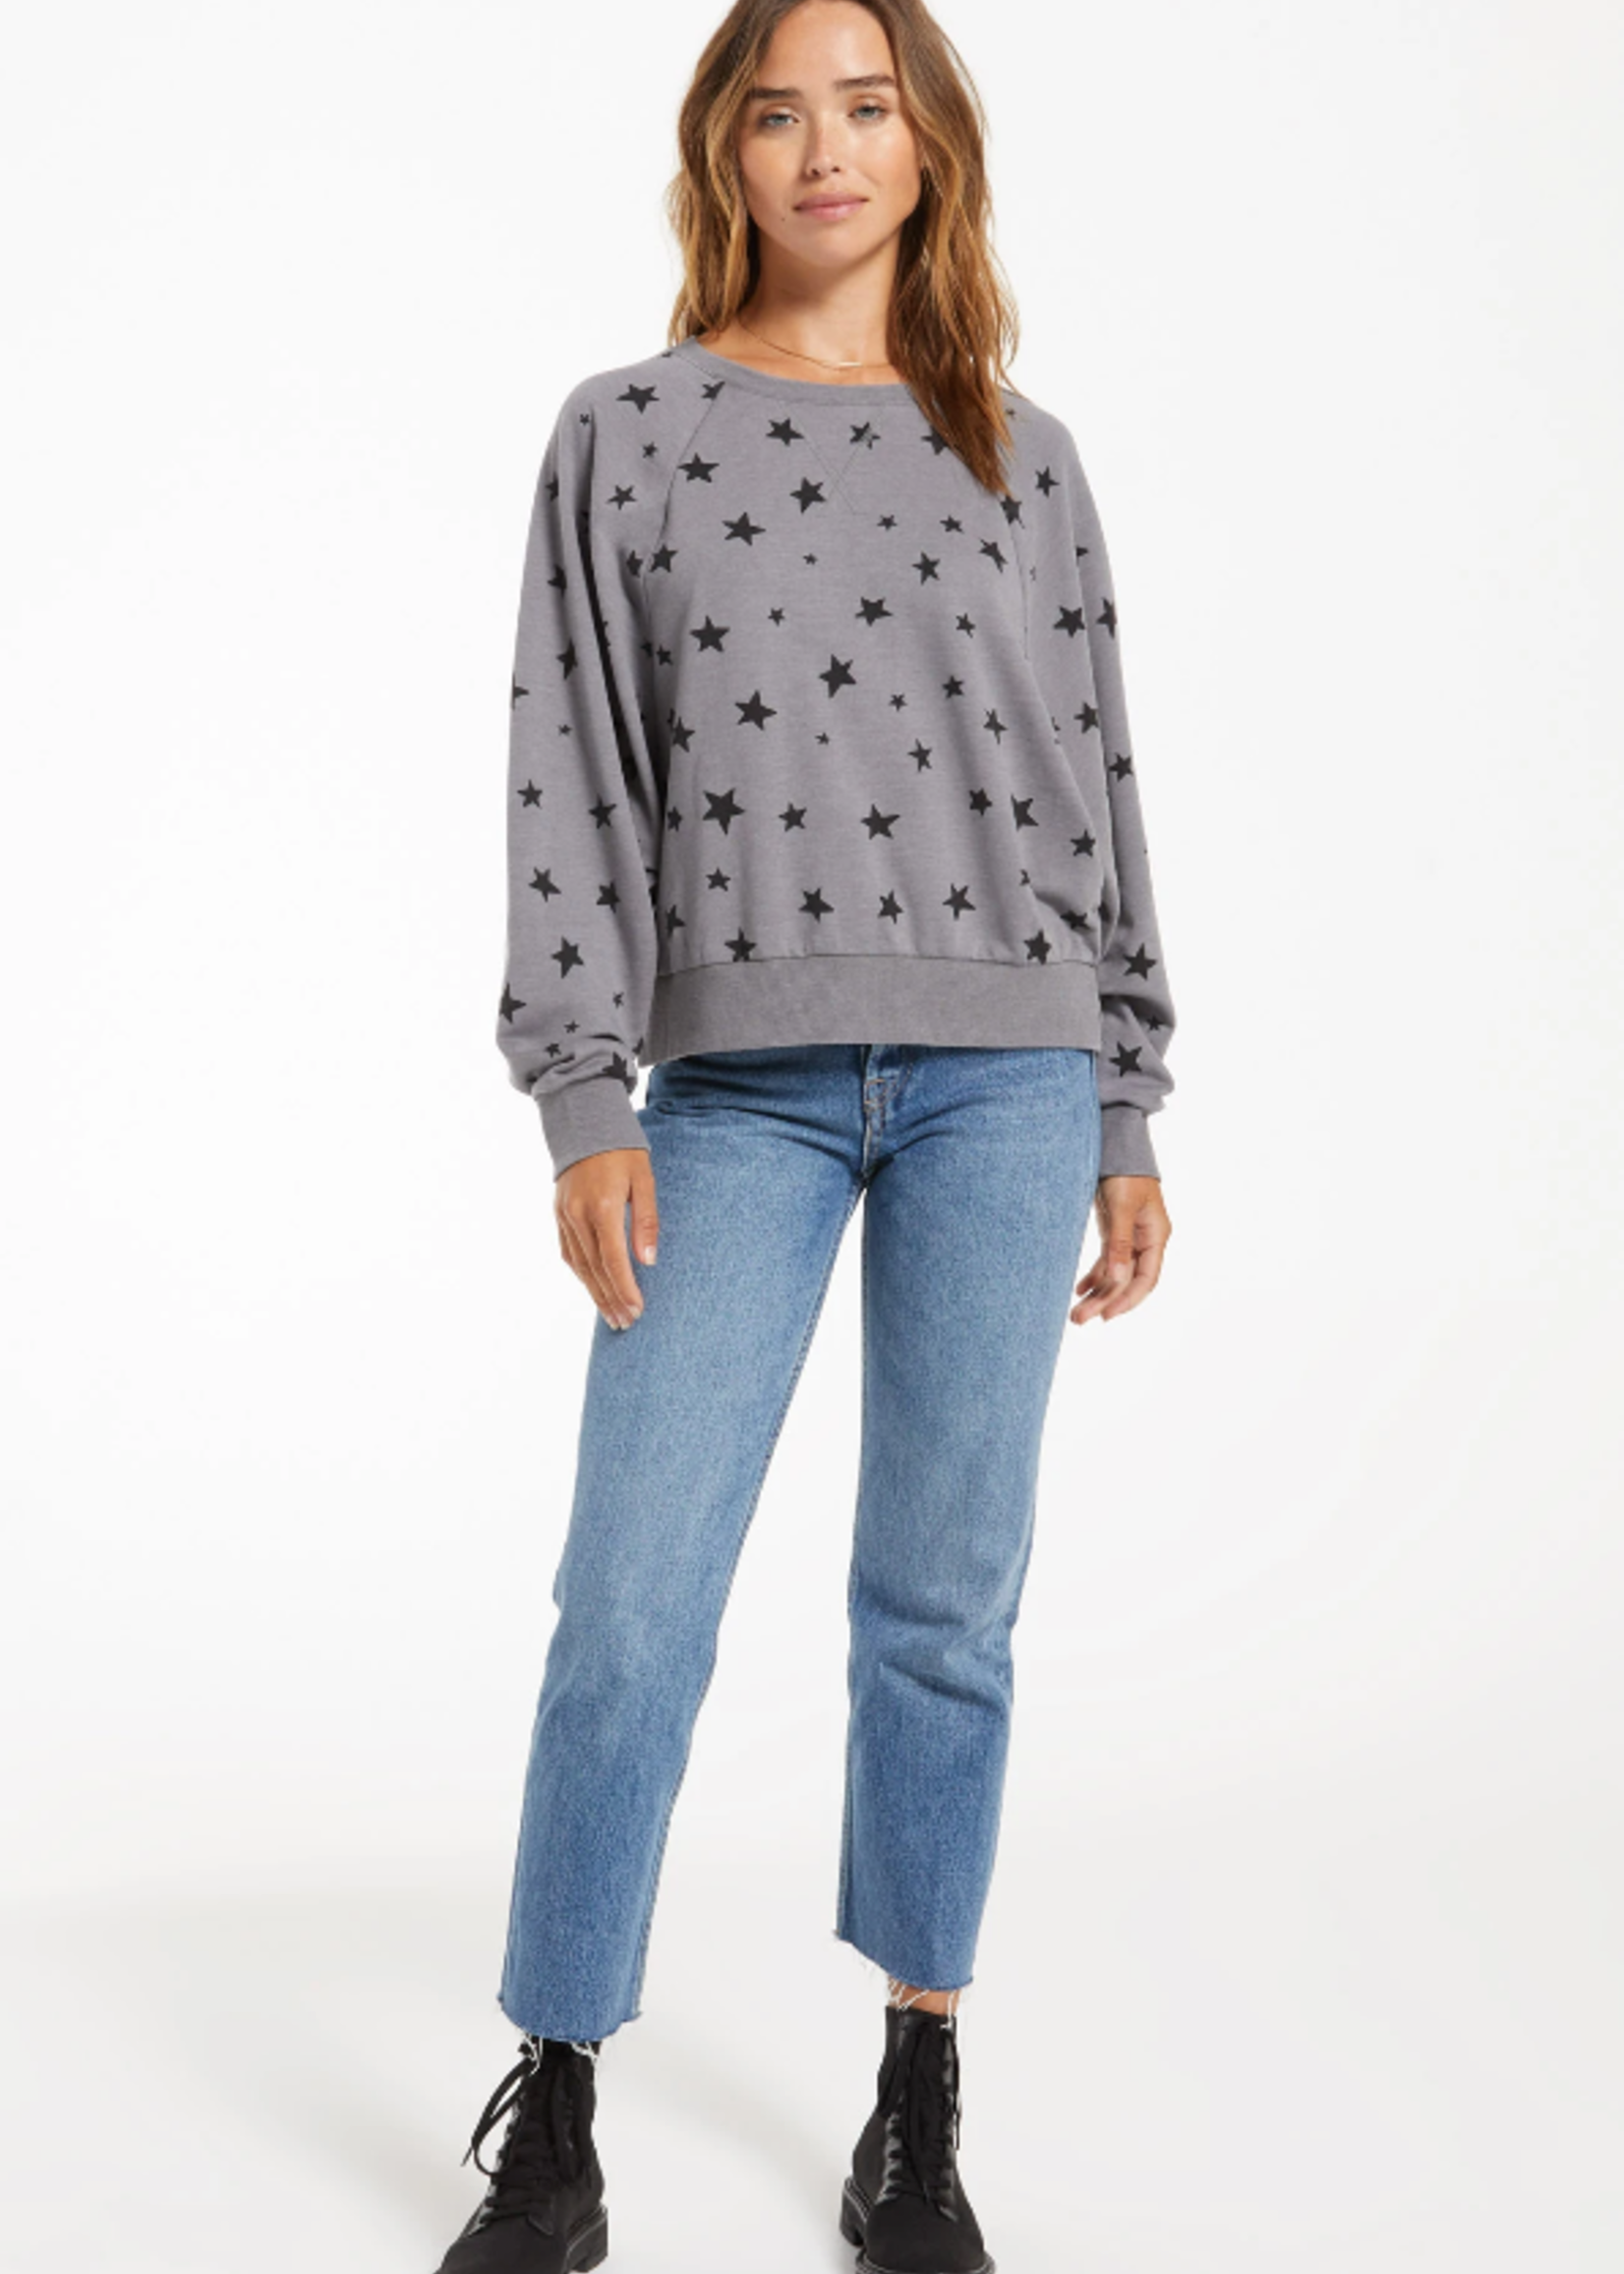 Z Supply Marella Star Pullover - Charcoal